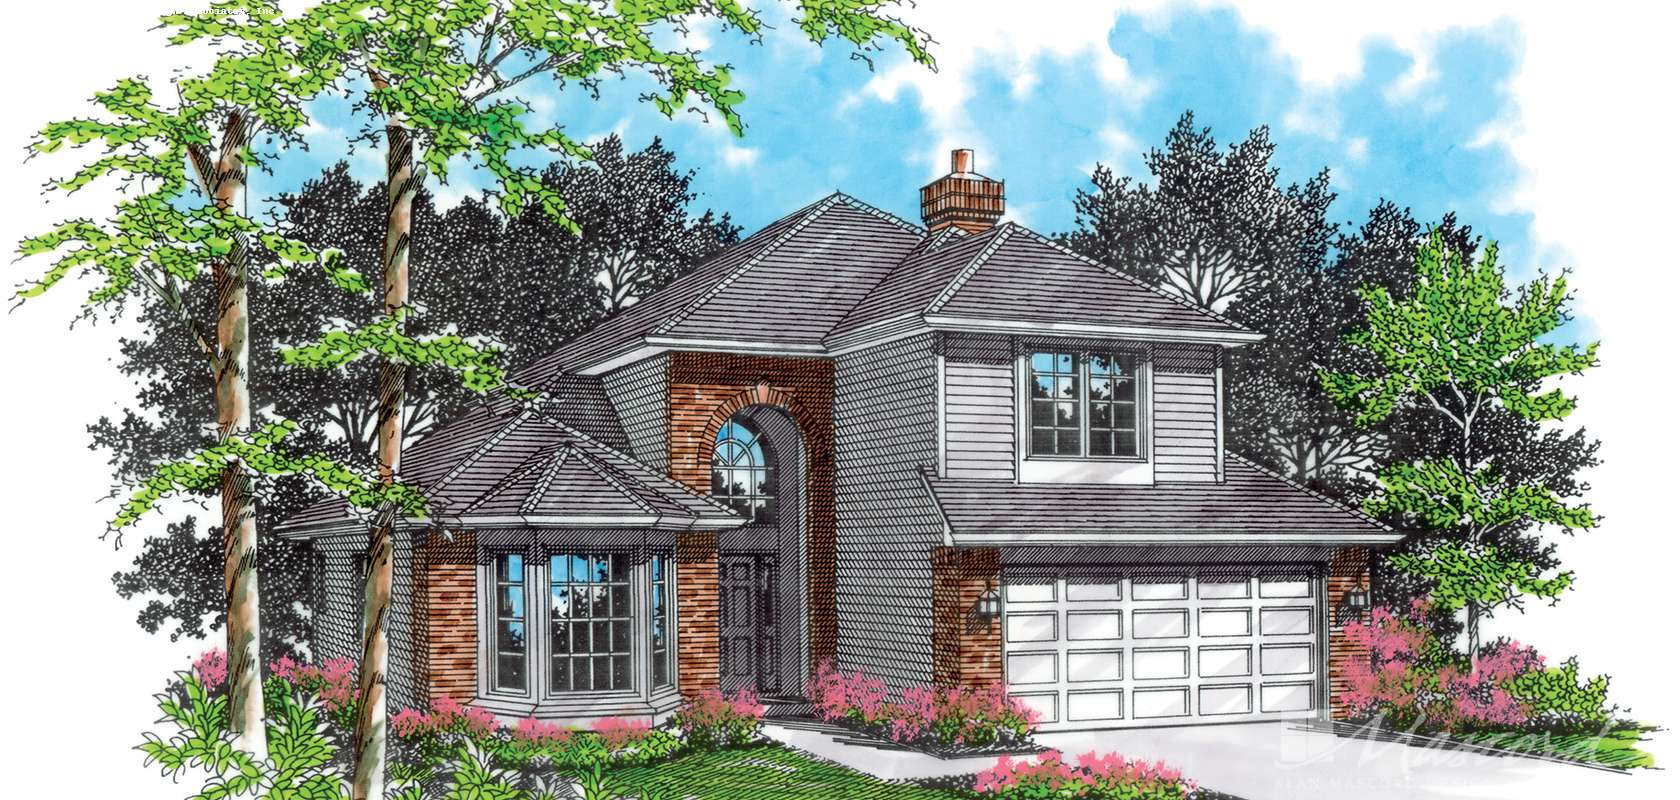 Mascord House Plan 2247C: The Keithsform